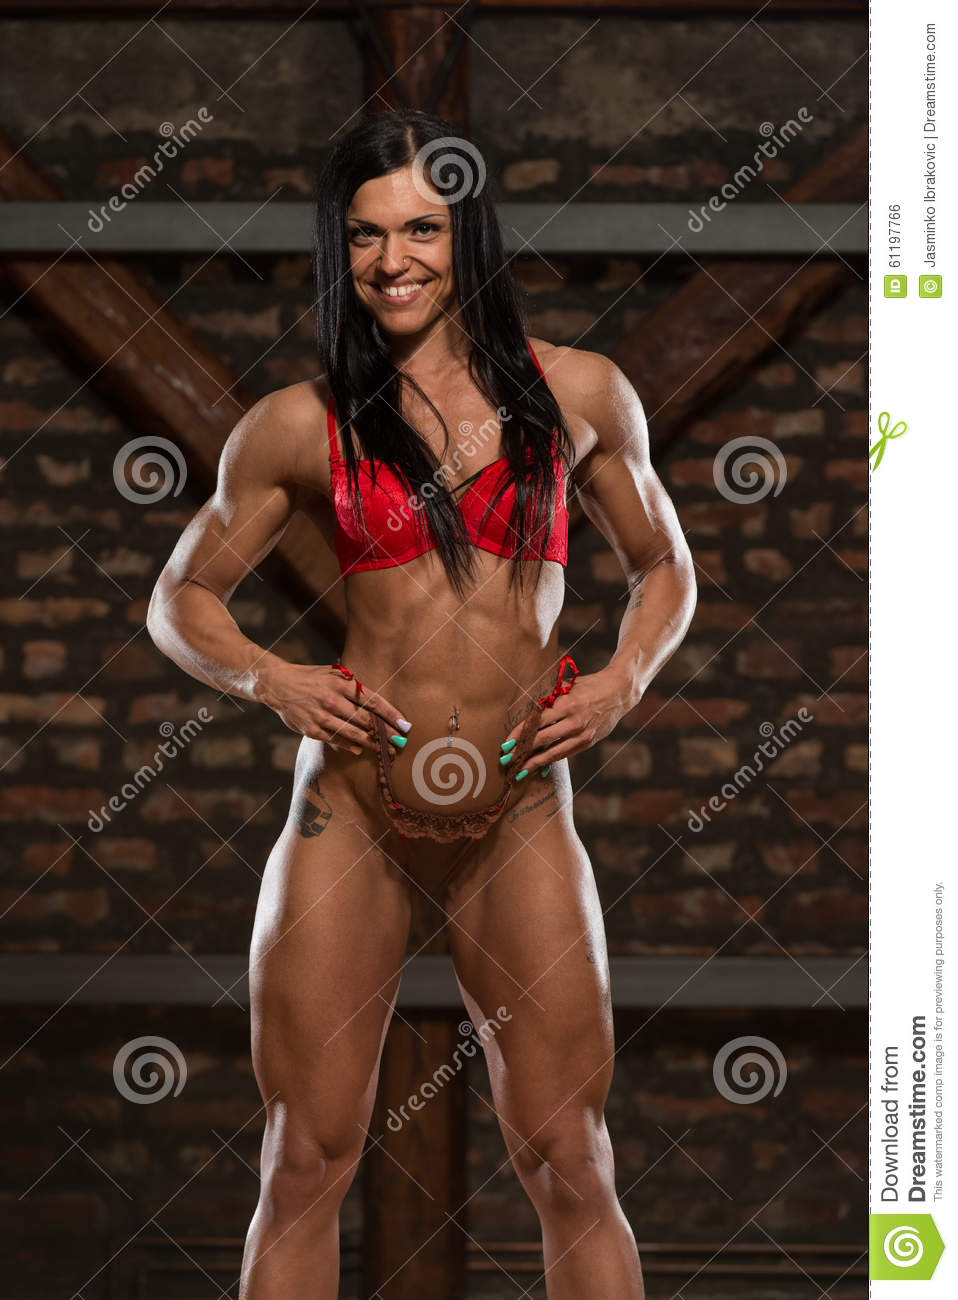 Body building woman sexy